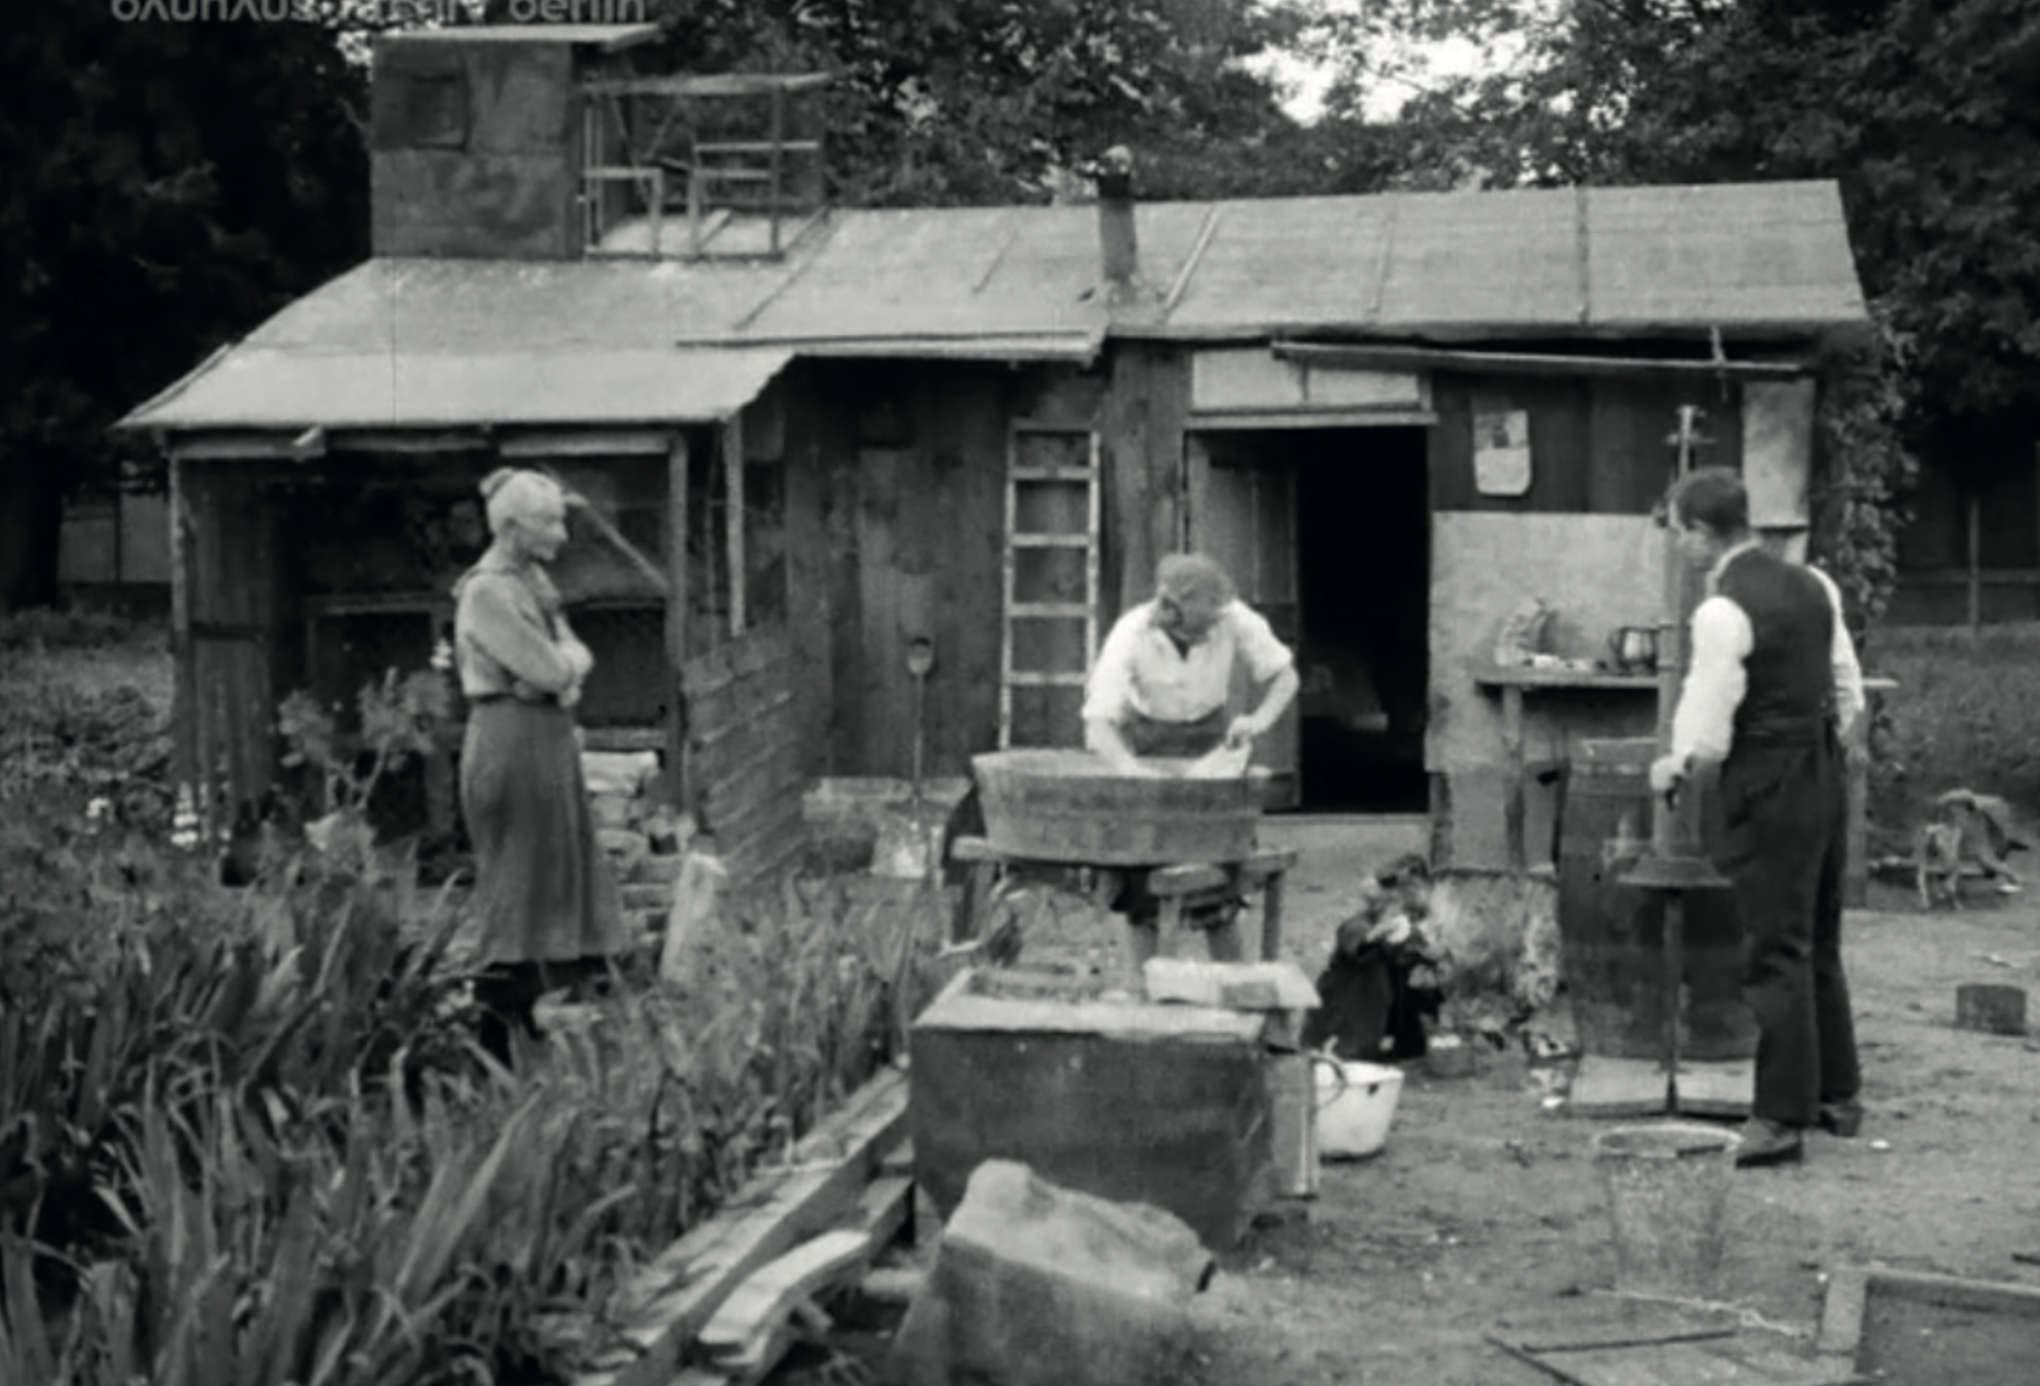 Conditions are equally bad for the hundreds of thousand allotment sheds where cooking, sleeping and living activities share the same space. Image from: How to live healthily and economically? Film series in four episodes by Walter Gropius and the Humboldt film GMBH, 1926.